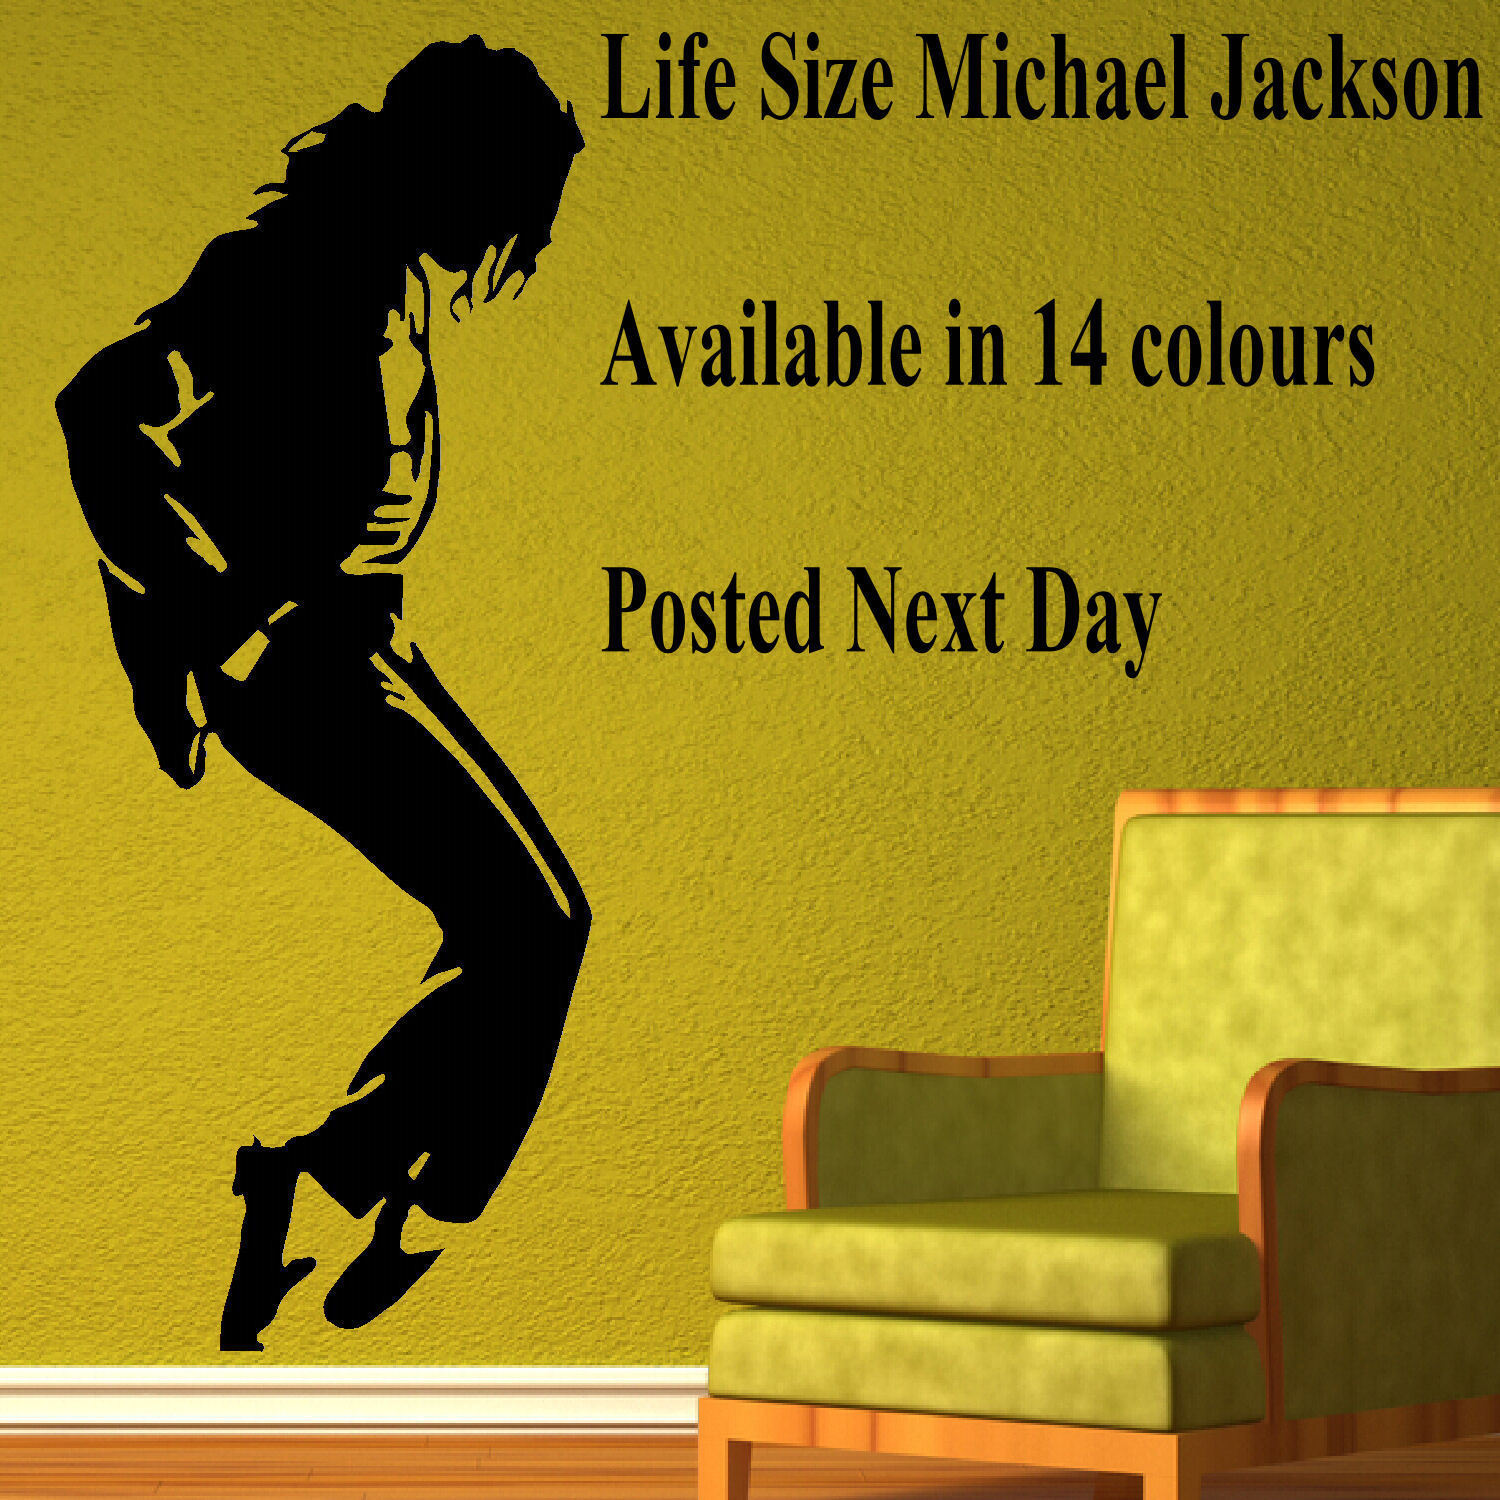 EXTRA LARGE MICHAEL JACKSON ICONIC IMAGE LIFESIZE WALL ART STICKER ...